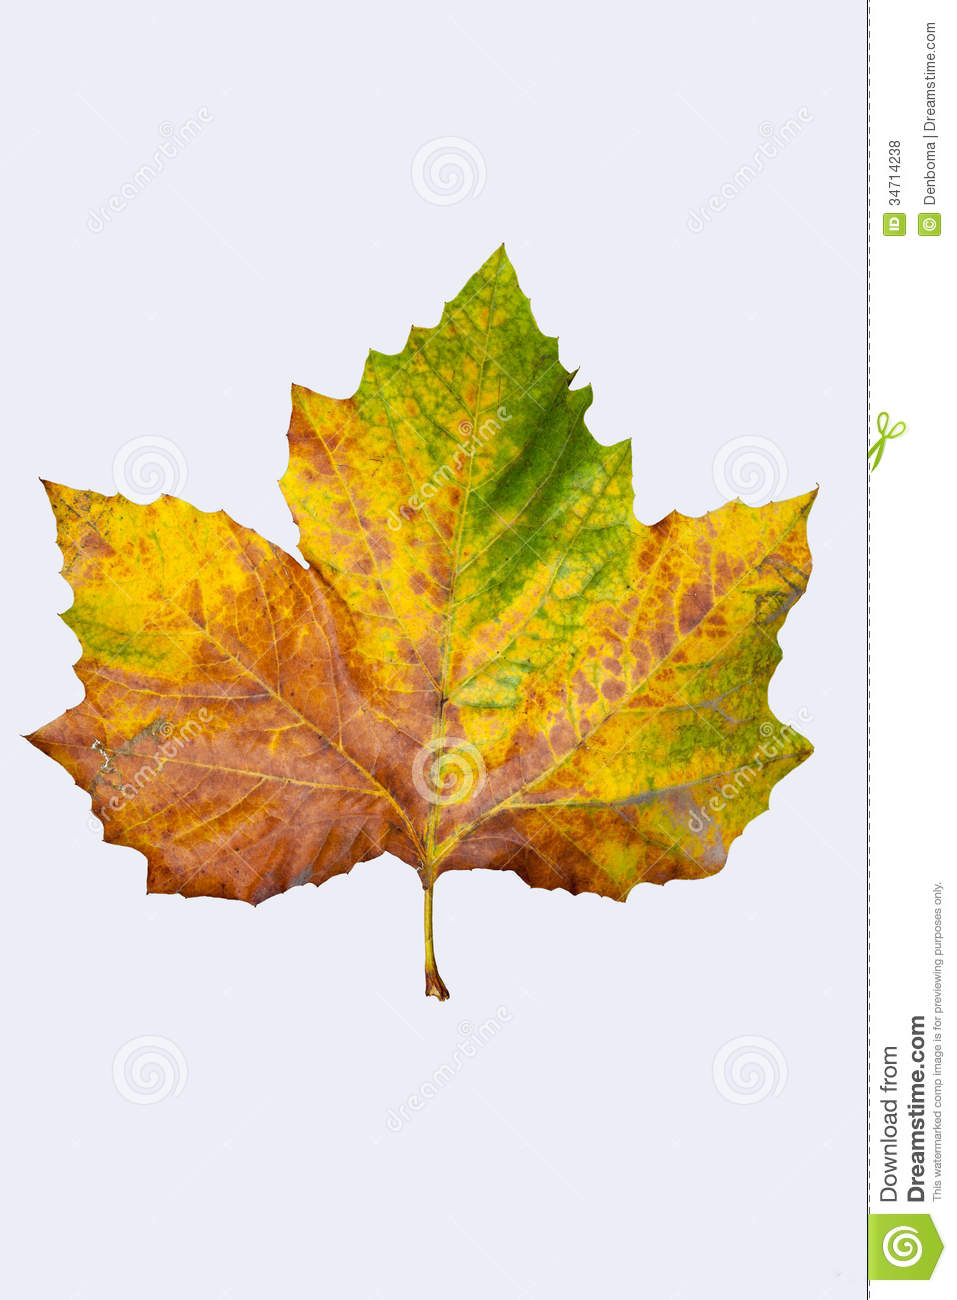 Why do the leaves fall off